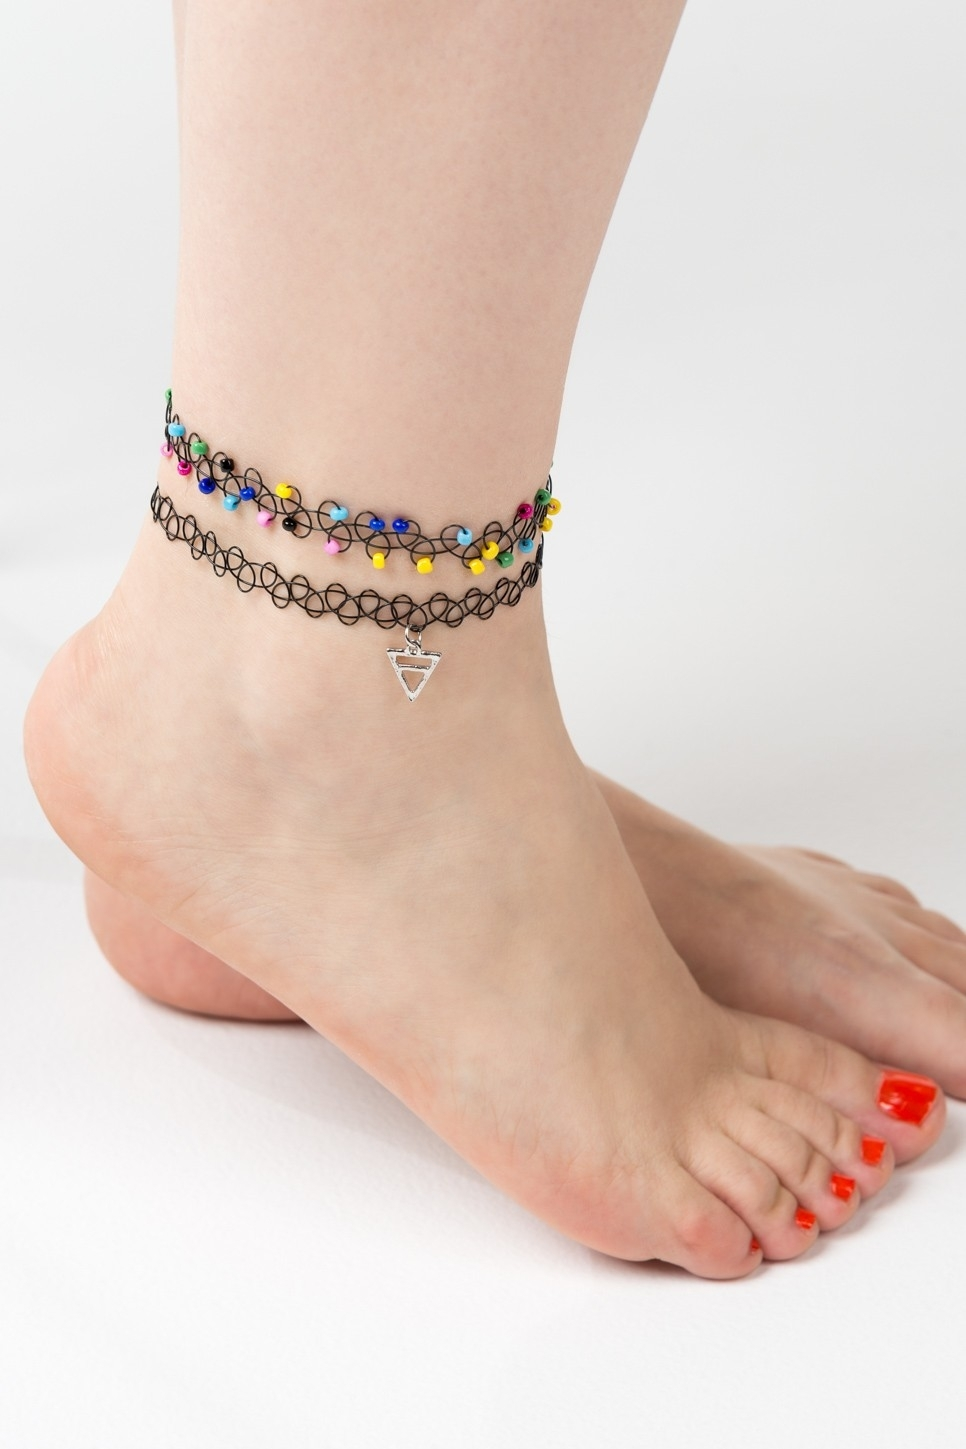 Choker Ankle Bracelets | ❤ Latest | Pinterest | Ankle Bracelets Intended For Most Up To Date Ardene Toe Rings (View 12 of 21)